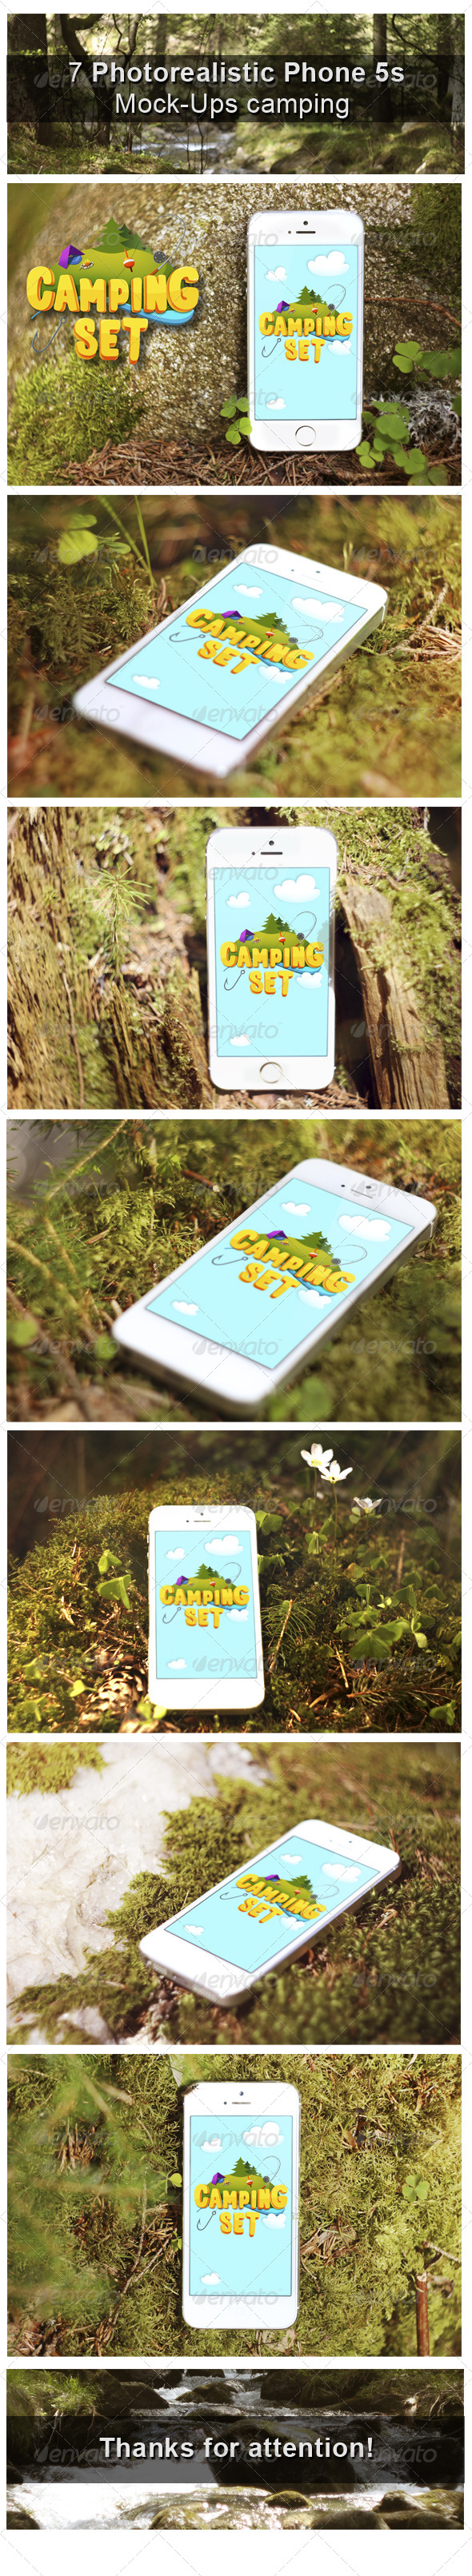 GraphicRiver Camping Phone Mock-Up 8295782